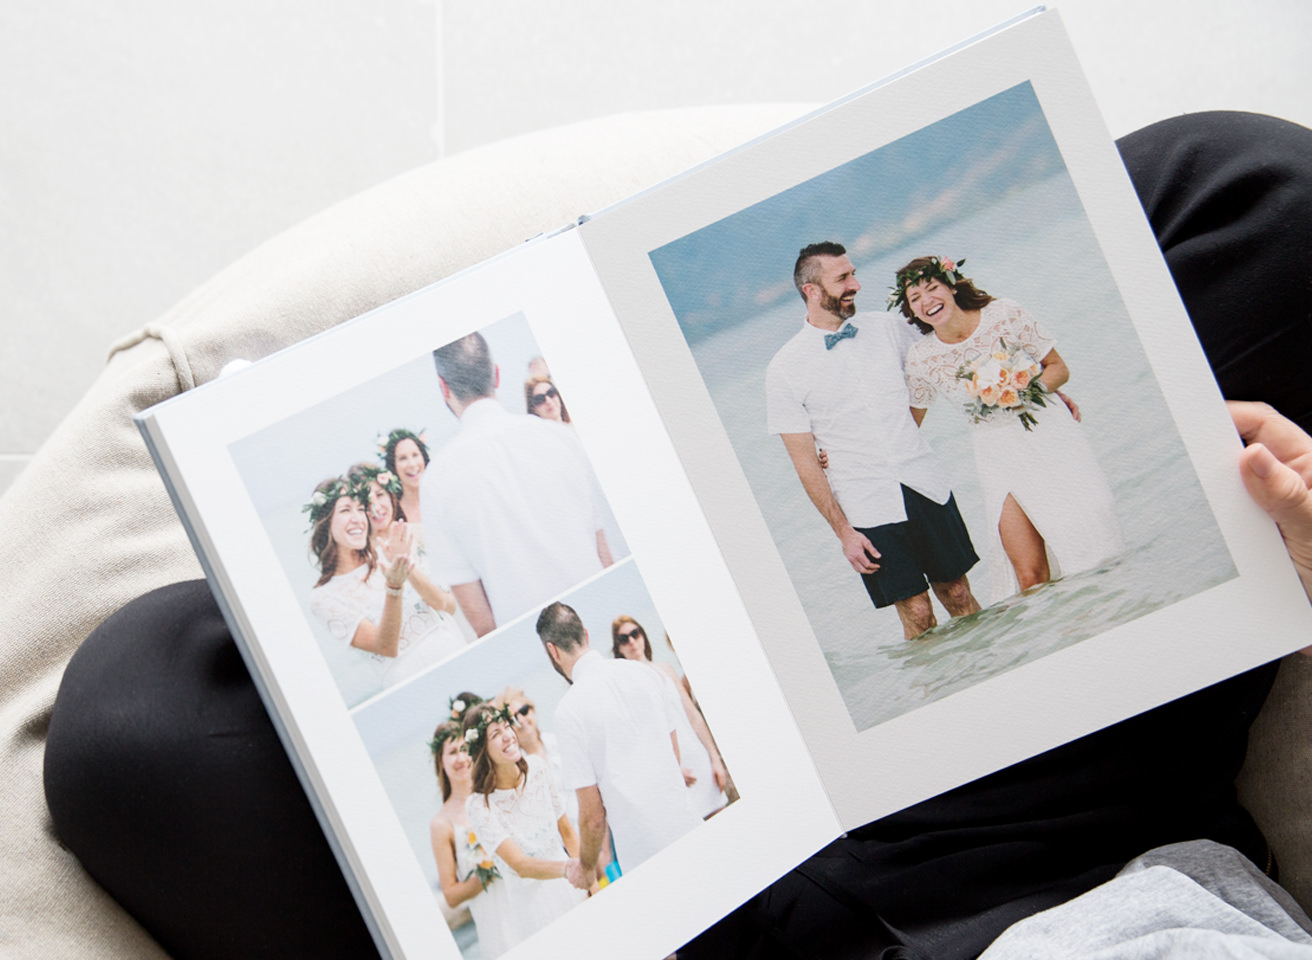 Open page of wedding photo album showing three photos of couple on their wedding day